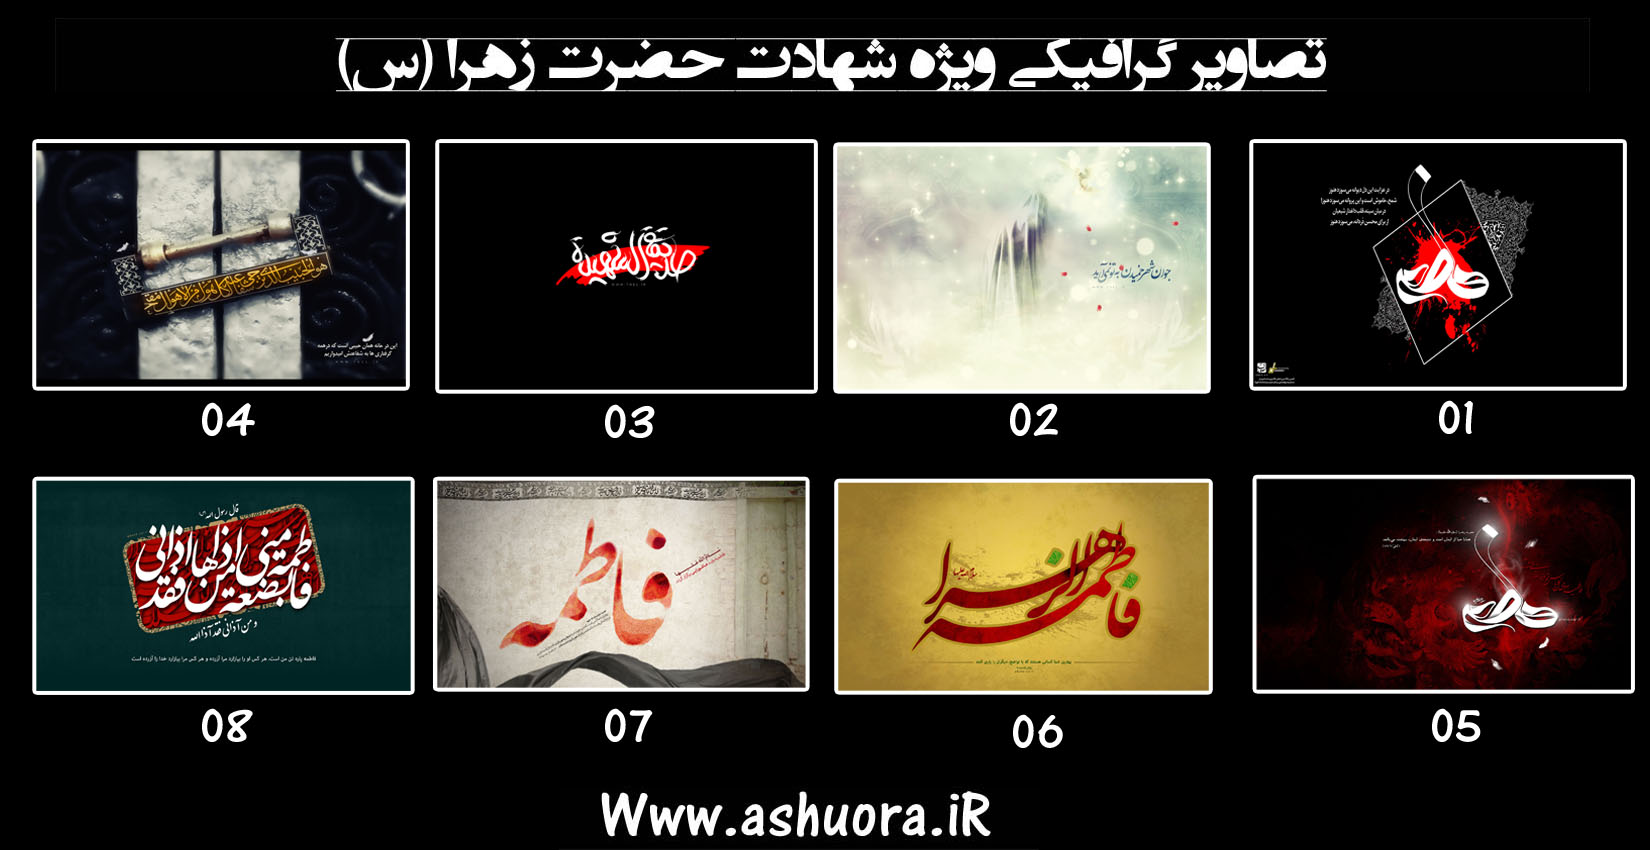 http://rozup.ir/up/ashuora/Pictures/fatemieh92/ofoghi/2%D8%B4%D9%87%D8%A7%D8%AF%D8%AA_%D8%AD%D8%B6%D8%B1%D8%AA_%D8%B2%D9%87%D8%B1%D8%A7.jpg